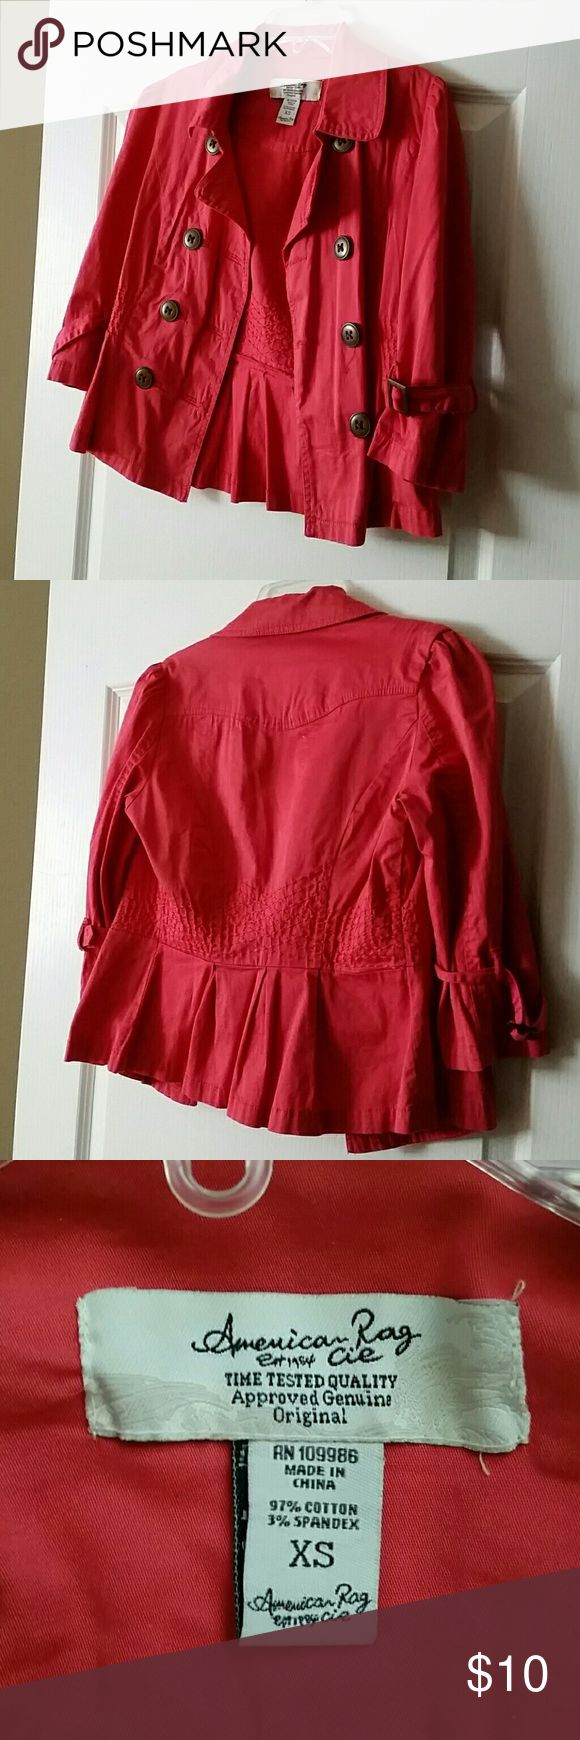 American Rag light jacket American Rag light jacket, great condition, cute details, more of a salmon color in person American Rag Jackets & Coats